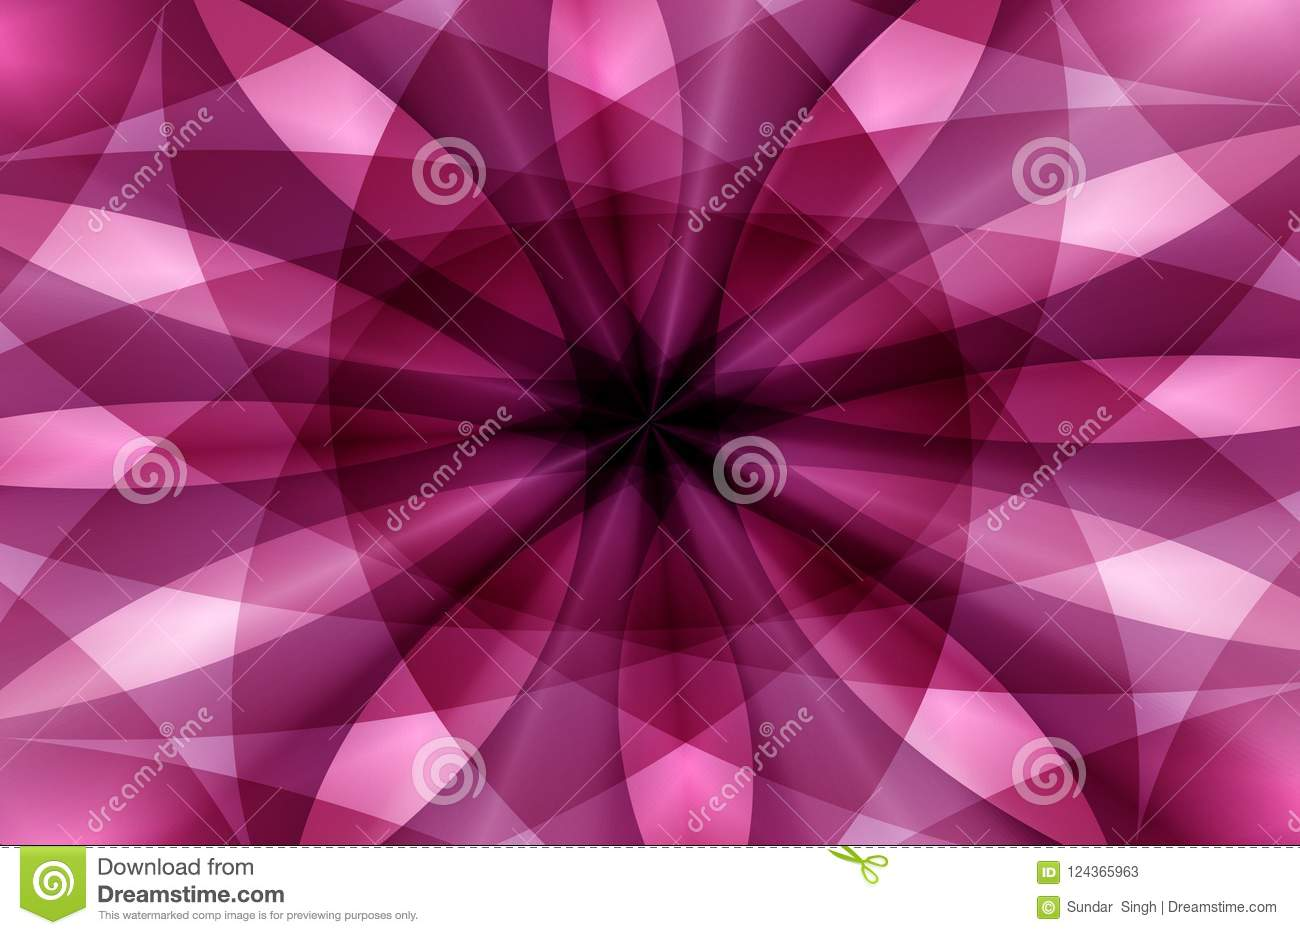 Abstract vector multicolored shaded wavy background with bubbles ,wallpaper, vector illustration,